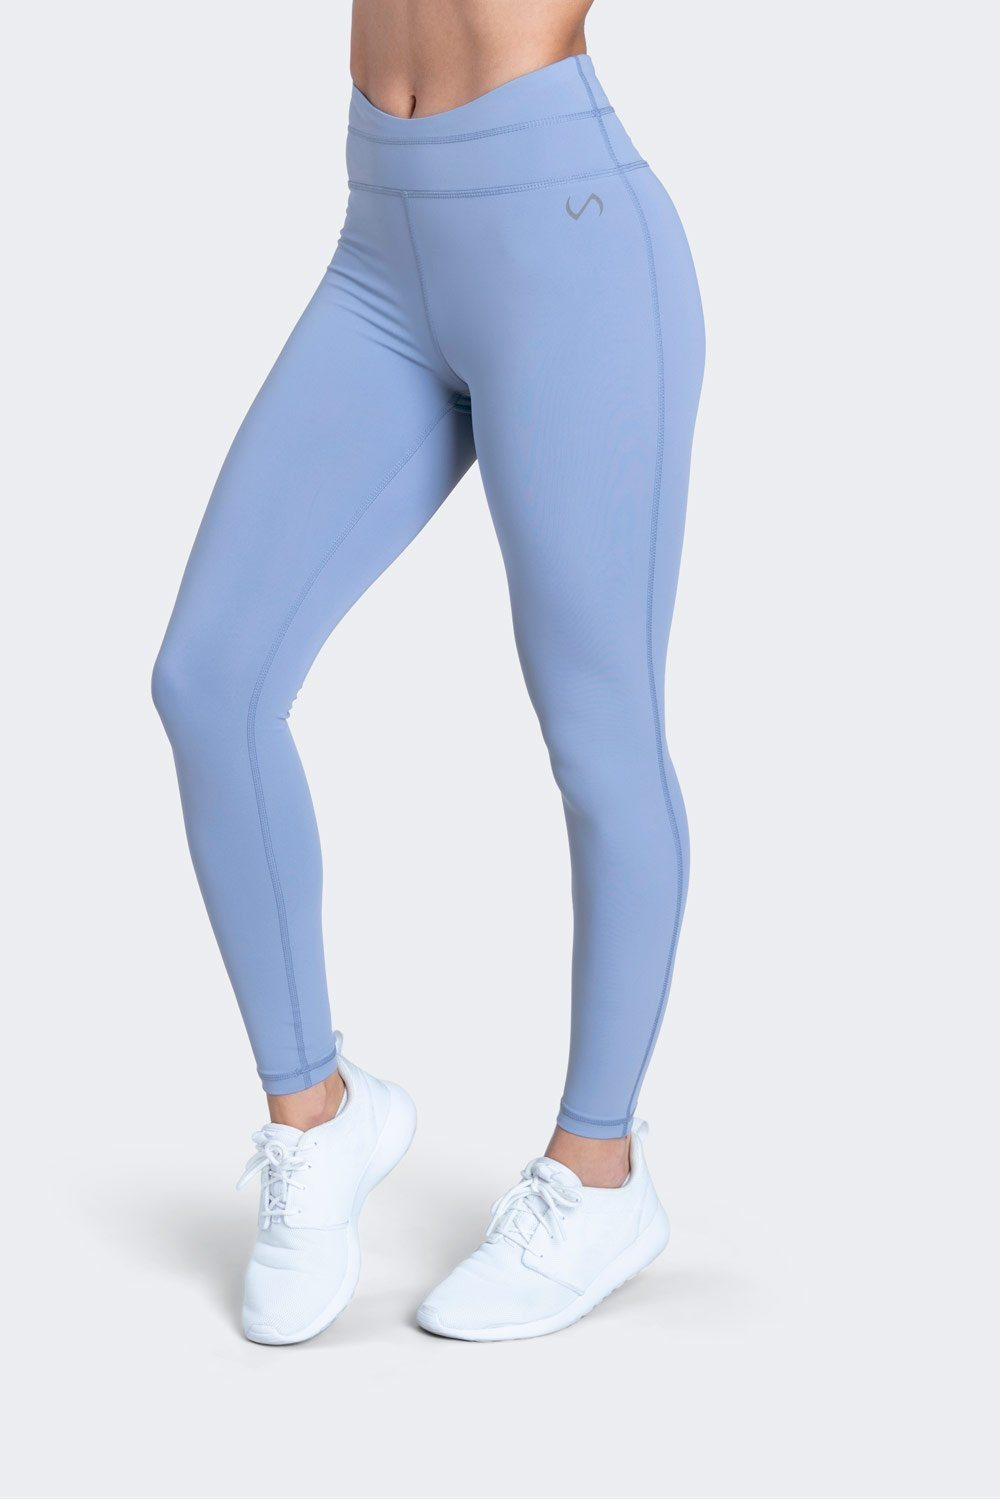 TLF Gaea 7/8 Legging - Leggings - TLF Apparel | Take Life Further